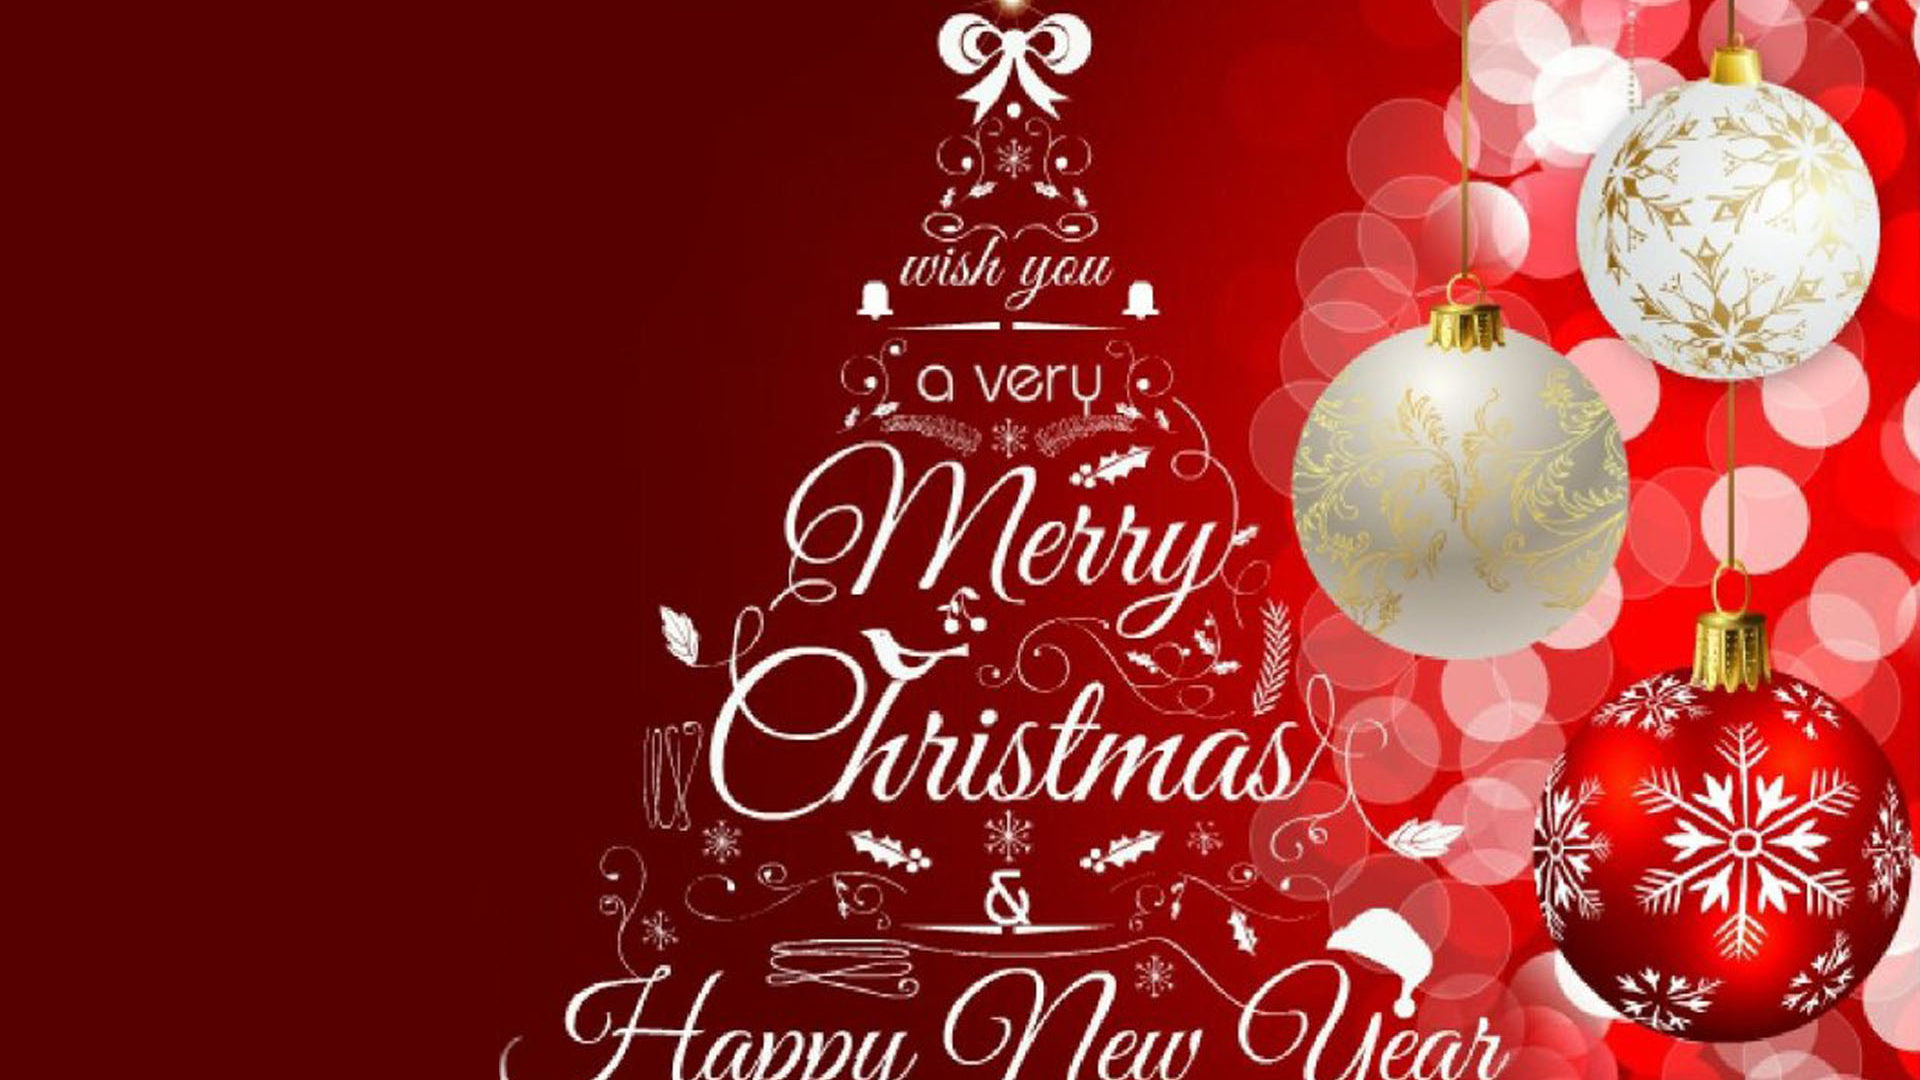 Greeting Card Merry Christmas And Happy New Year 2020 Images 1920x1080